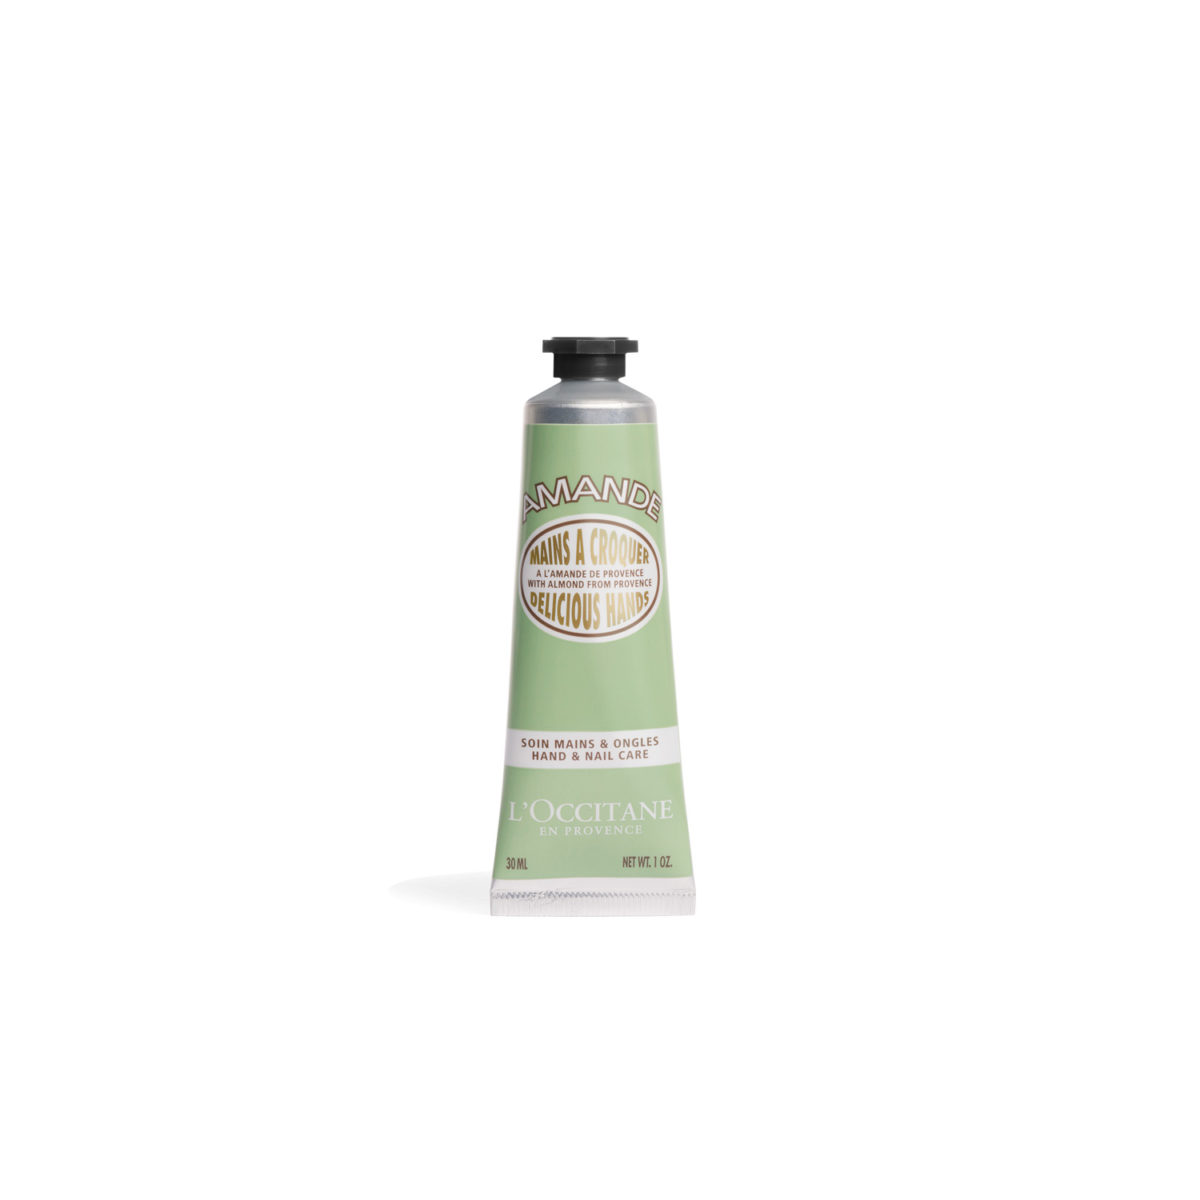 Loccitane Almond Delicious Hands (Travel Size) 30ml